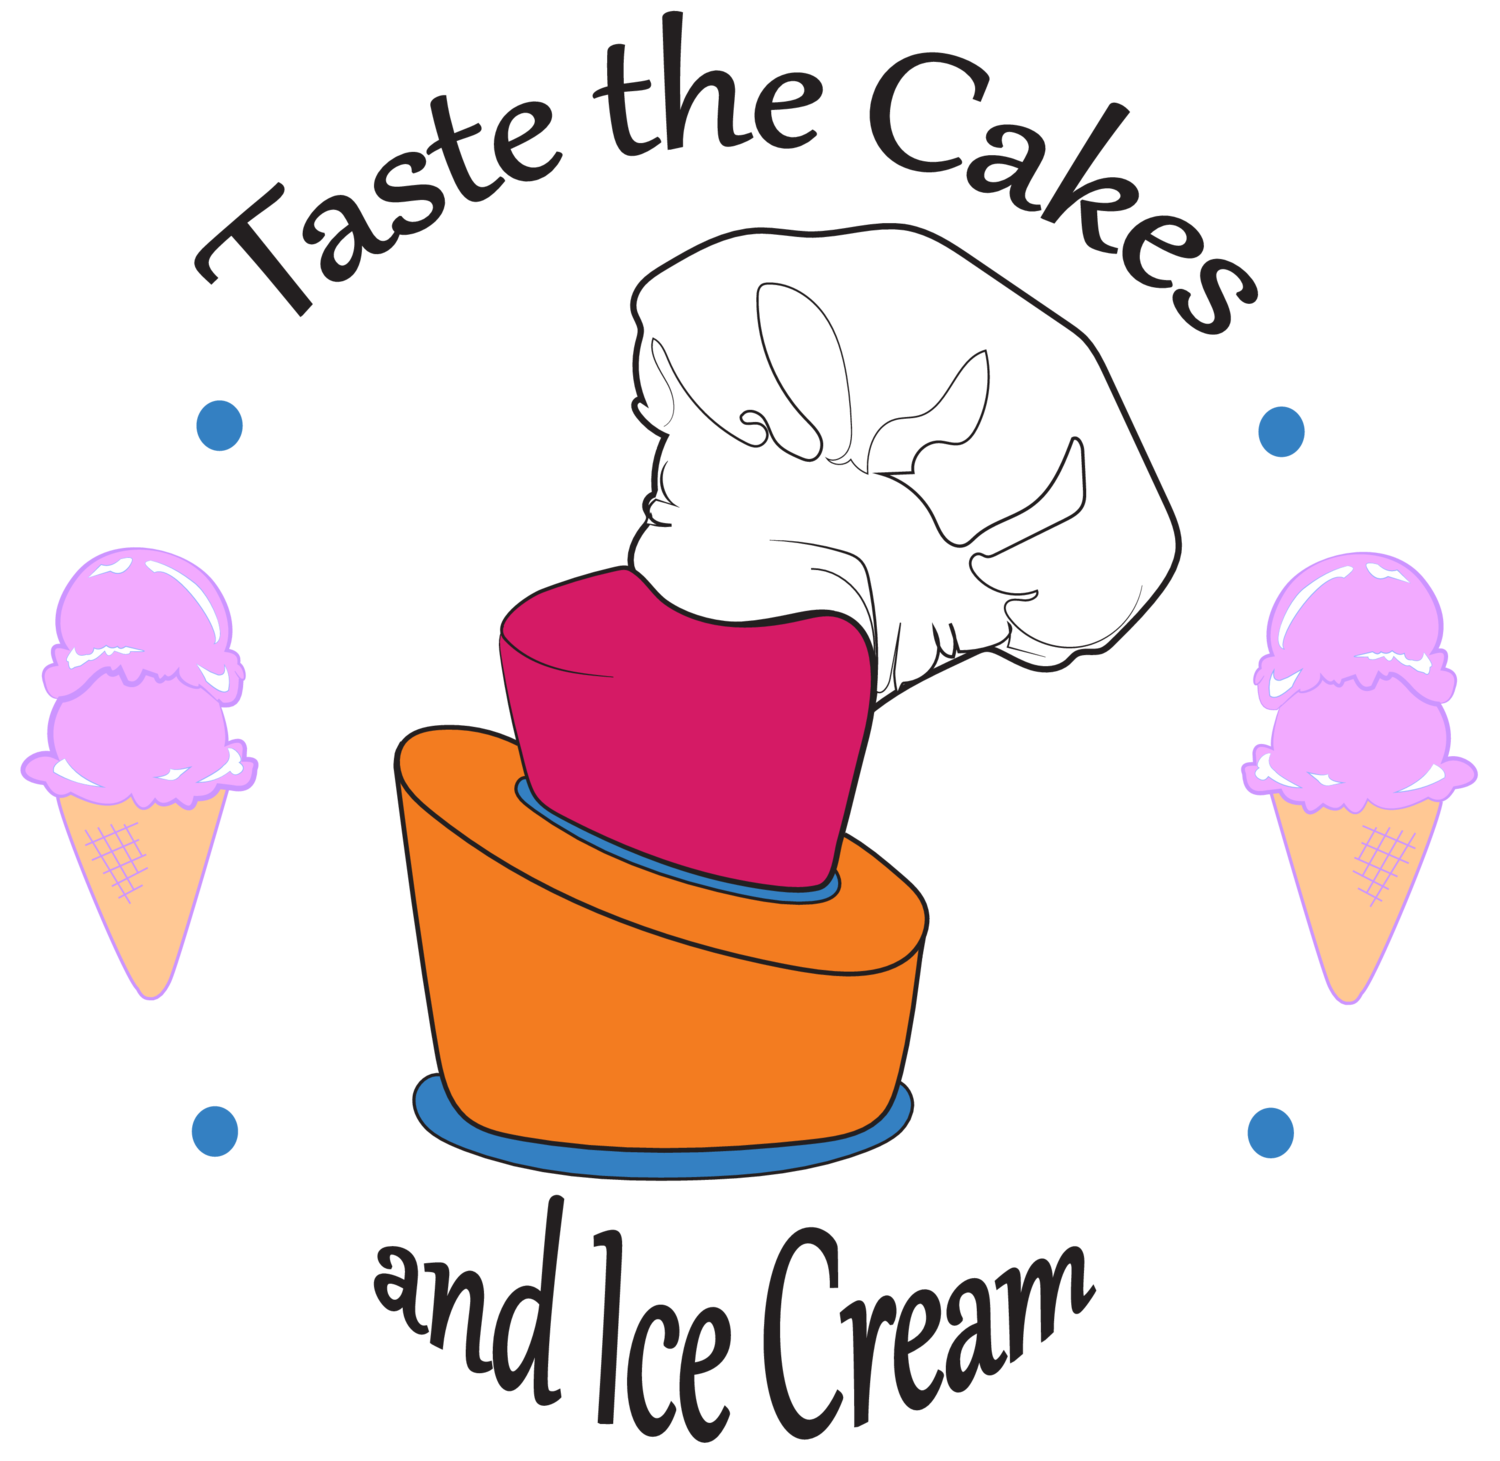 Taste The Cakes and Ice Cream